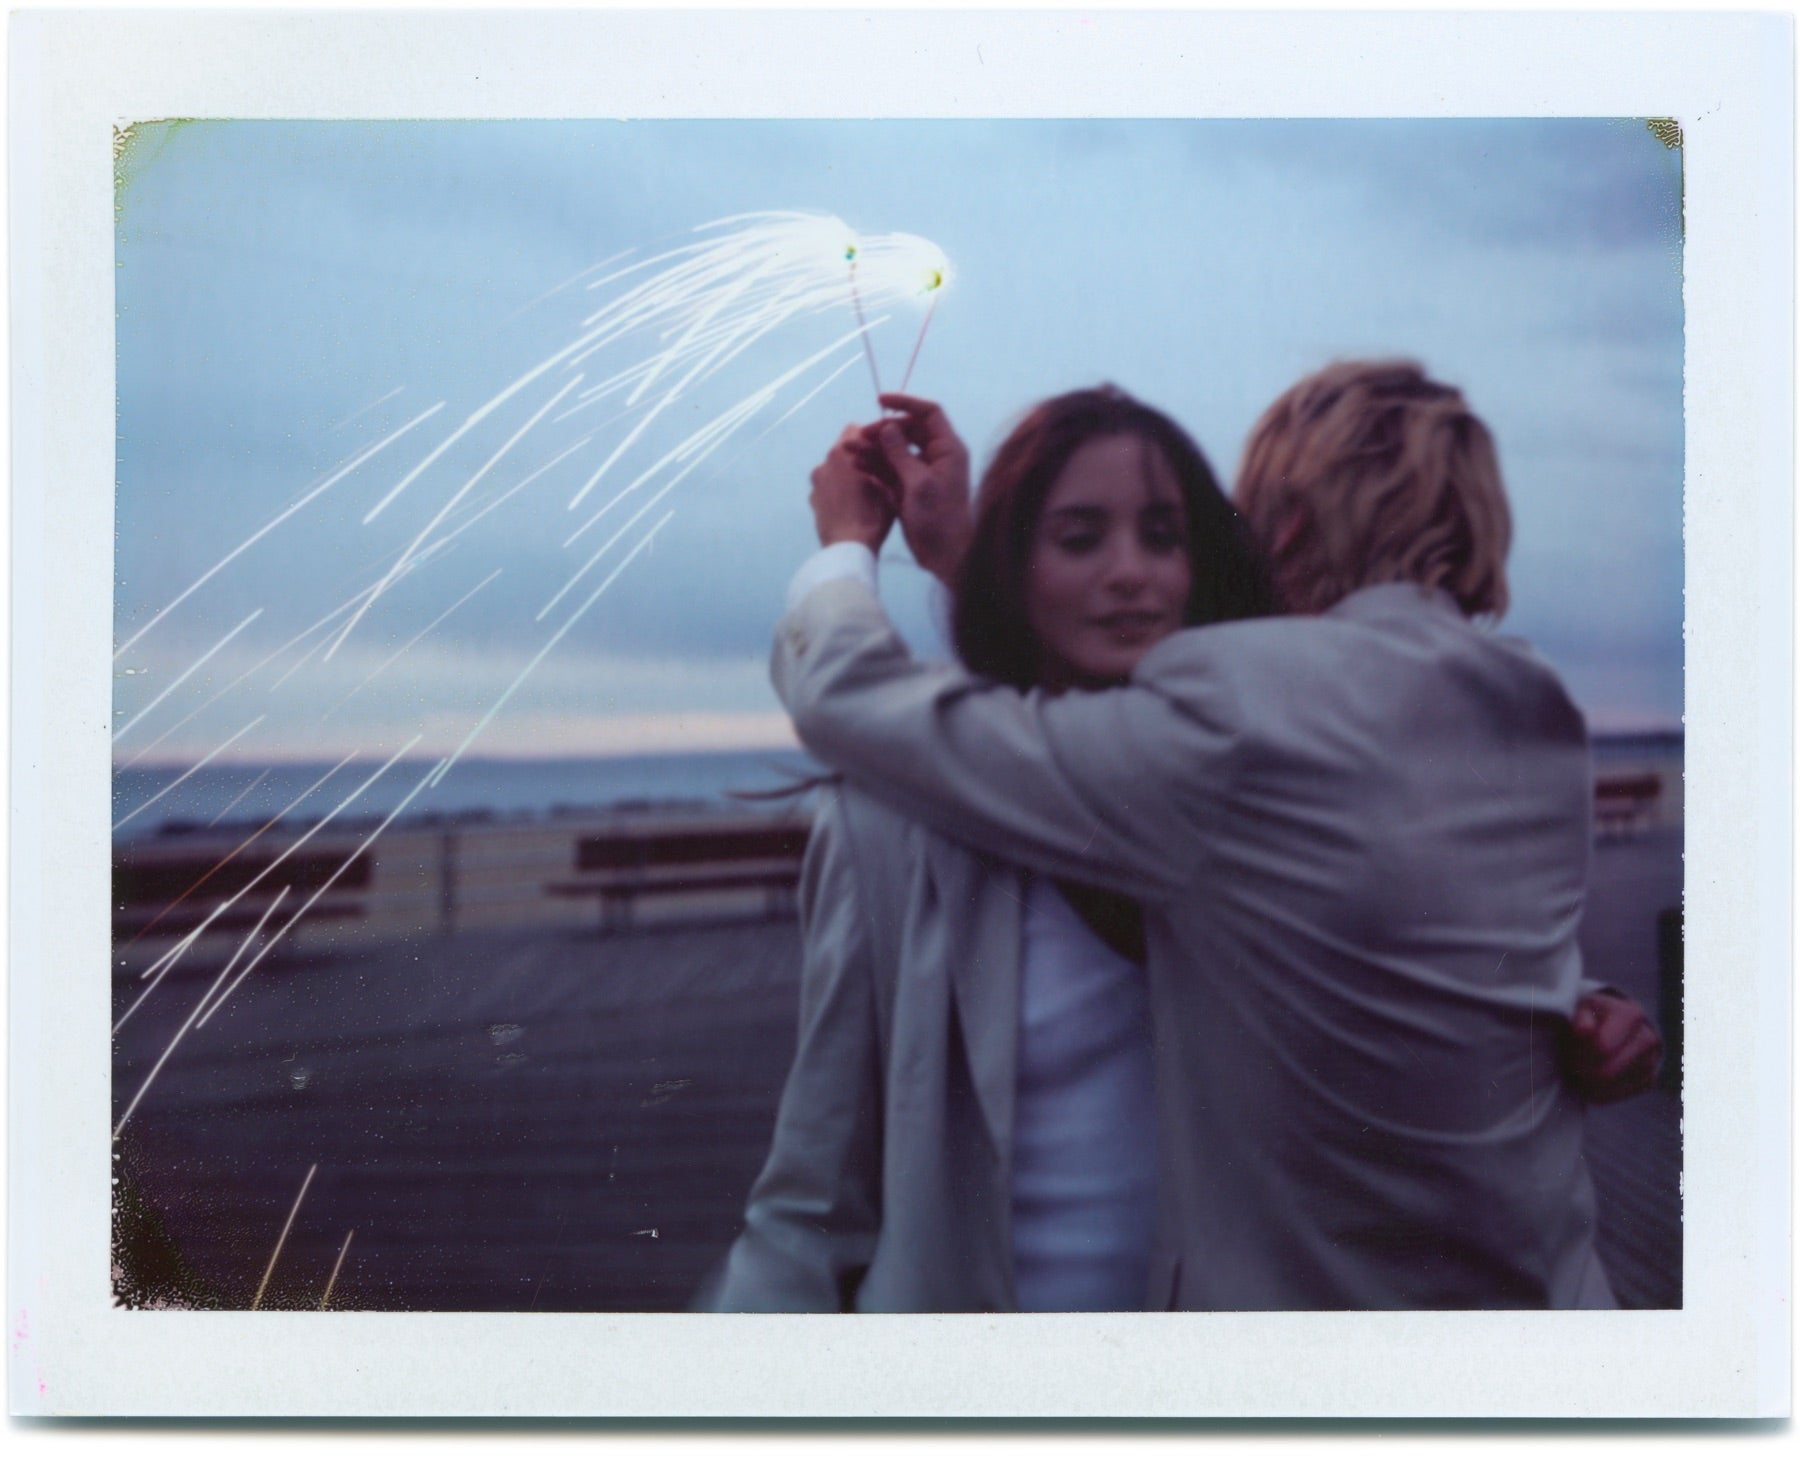 Couple on Coney Island Boardwalk - Original Polaroid by Dewey Nicks